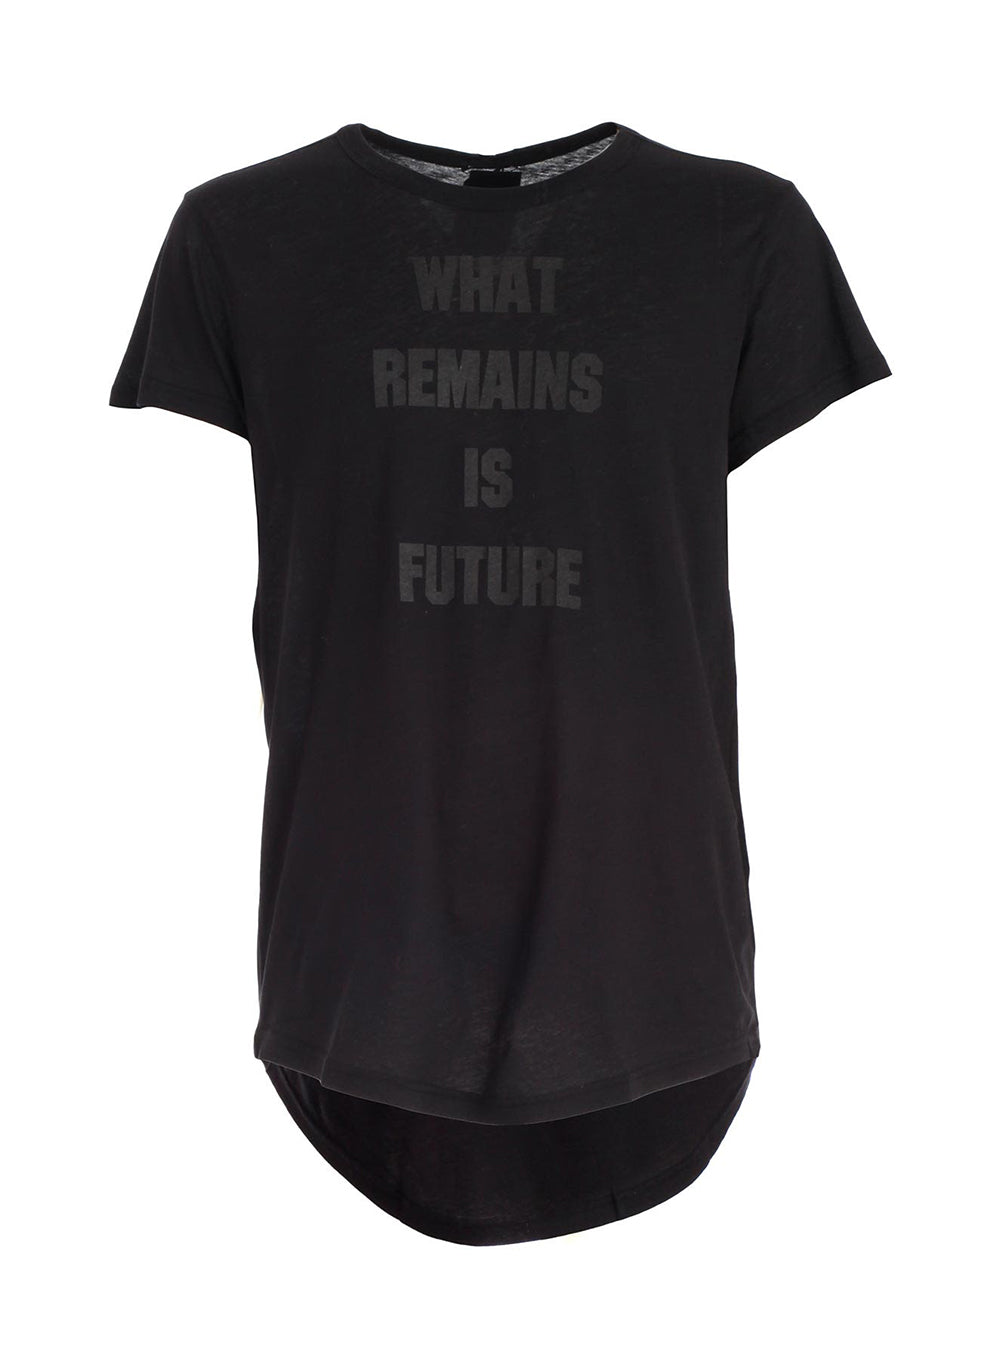 ANN DEMEULEMEESTER | Black 'What Remains Is Future' Graphic T-Shirt